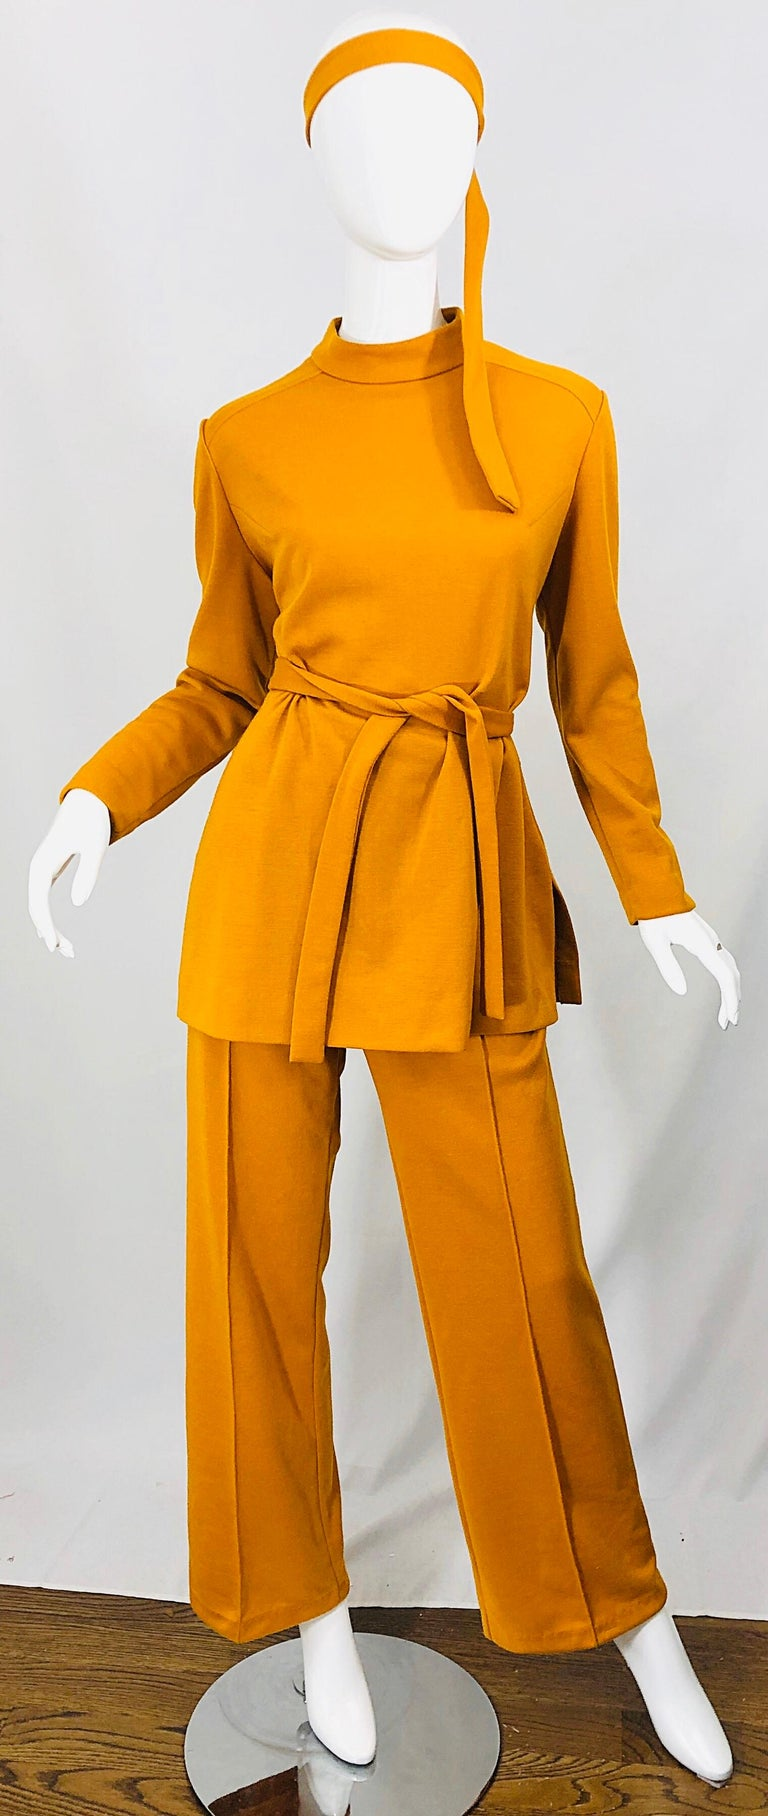 1970s Marigold Mustard Yellow Four Piece Vintage 70s Knit Shirt + Pants + Belt For Sale 2